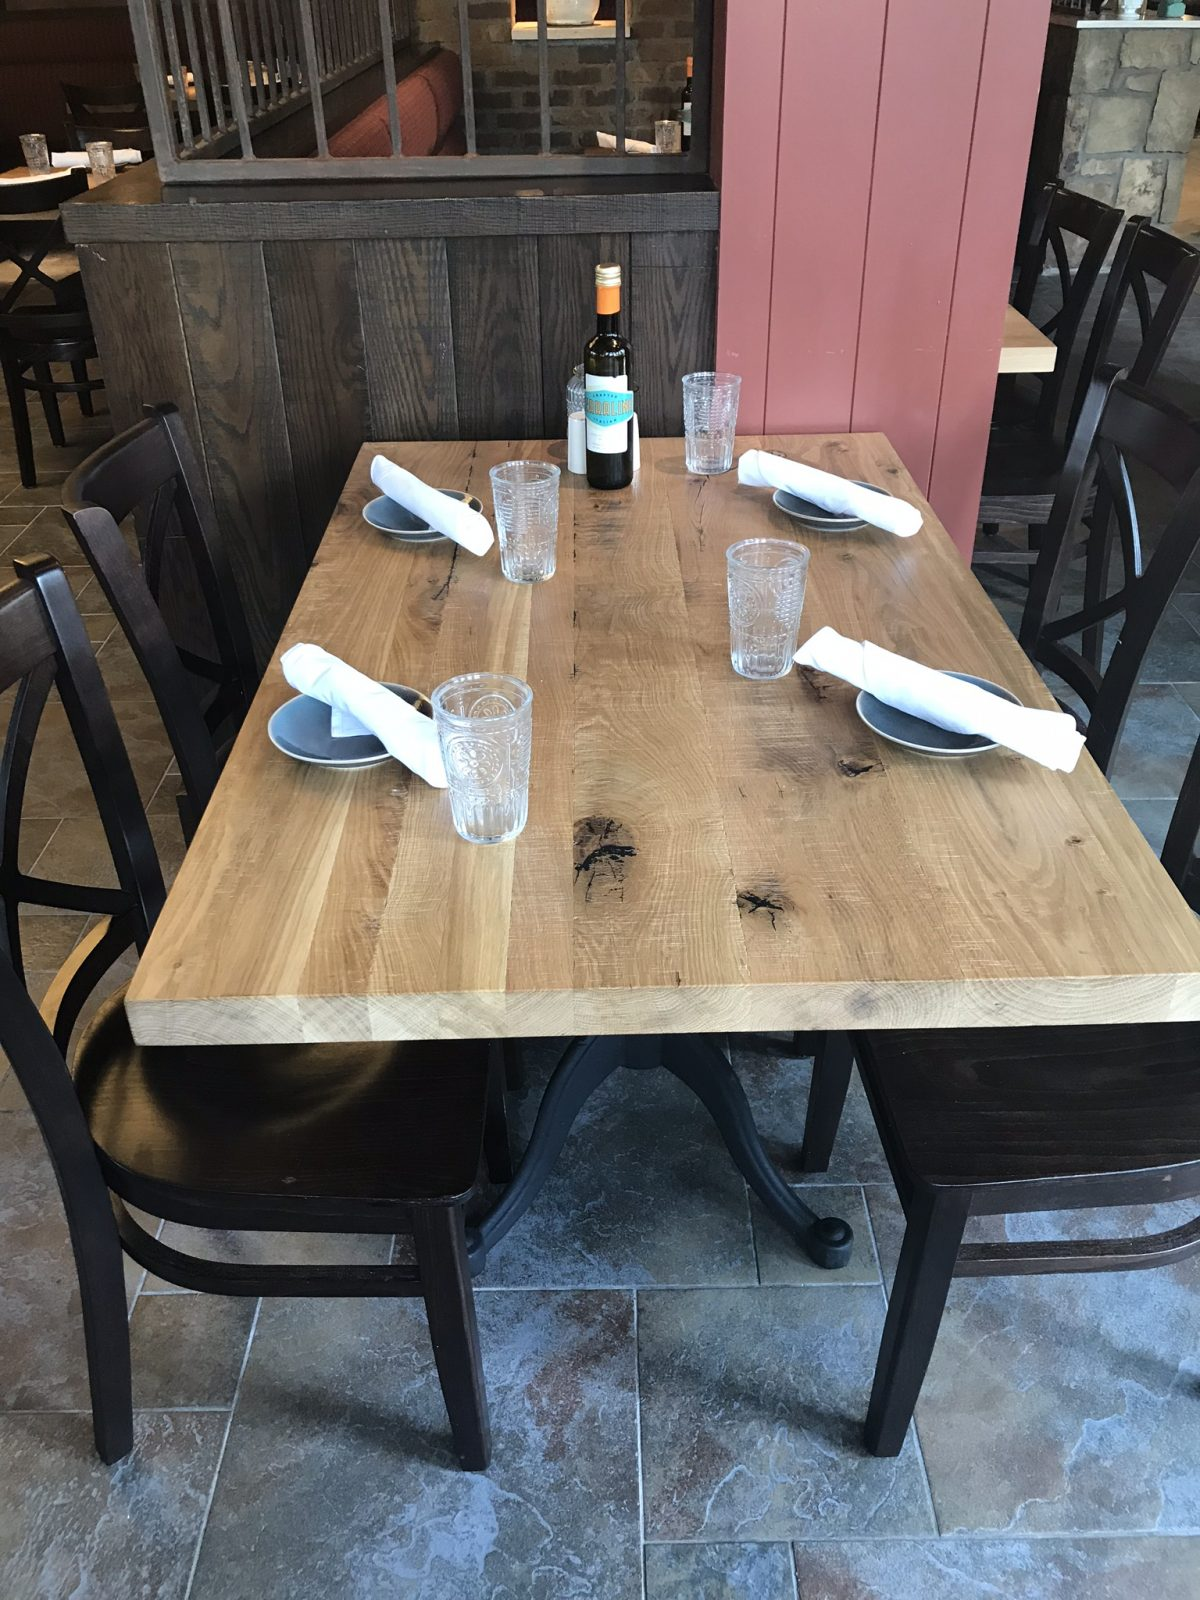 table set up with glasses, bread plates and silverware